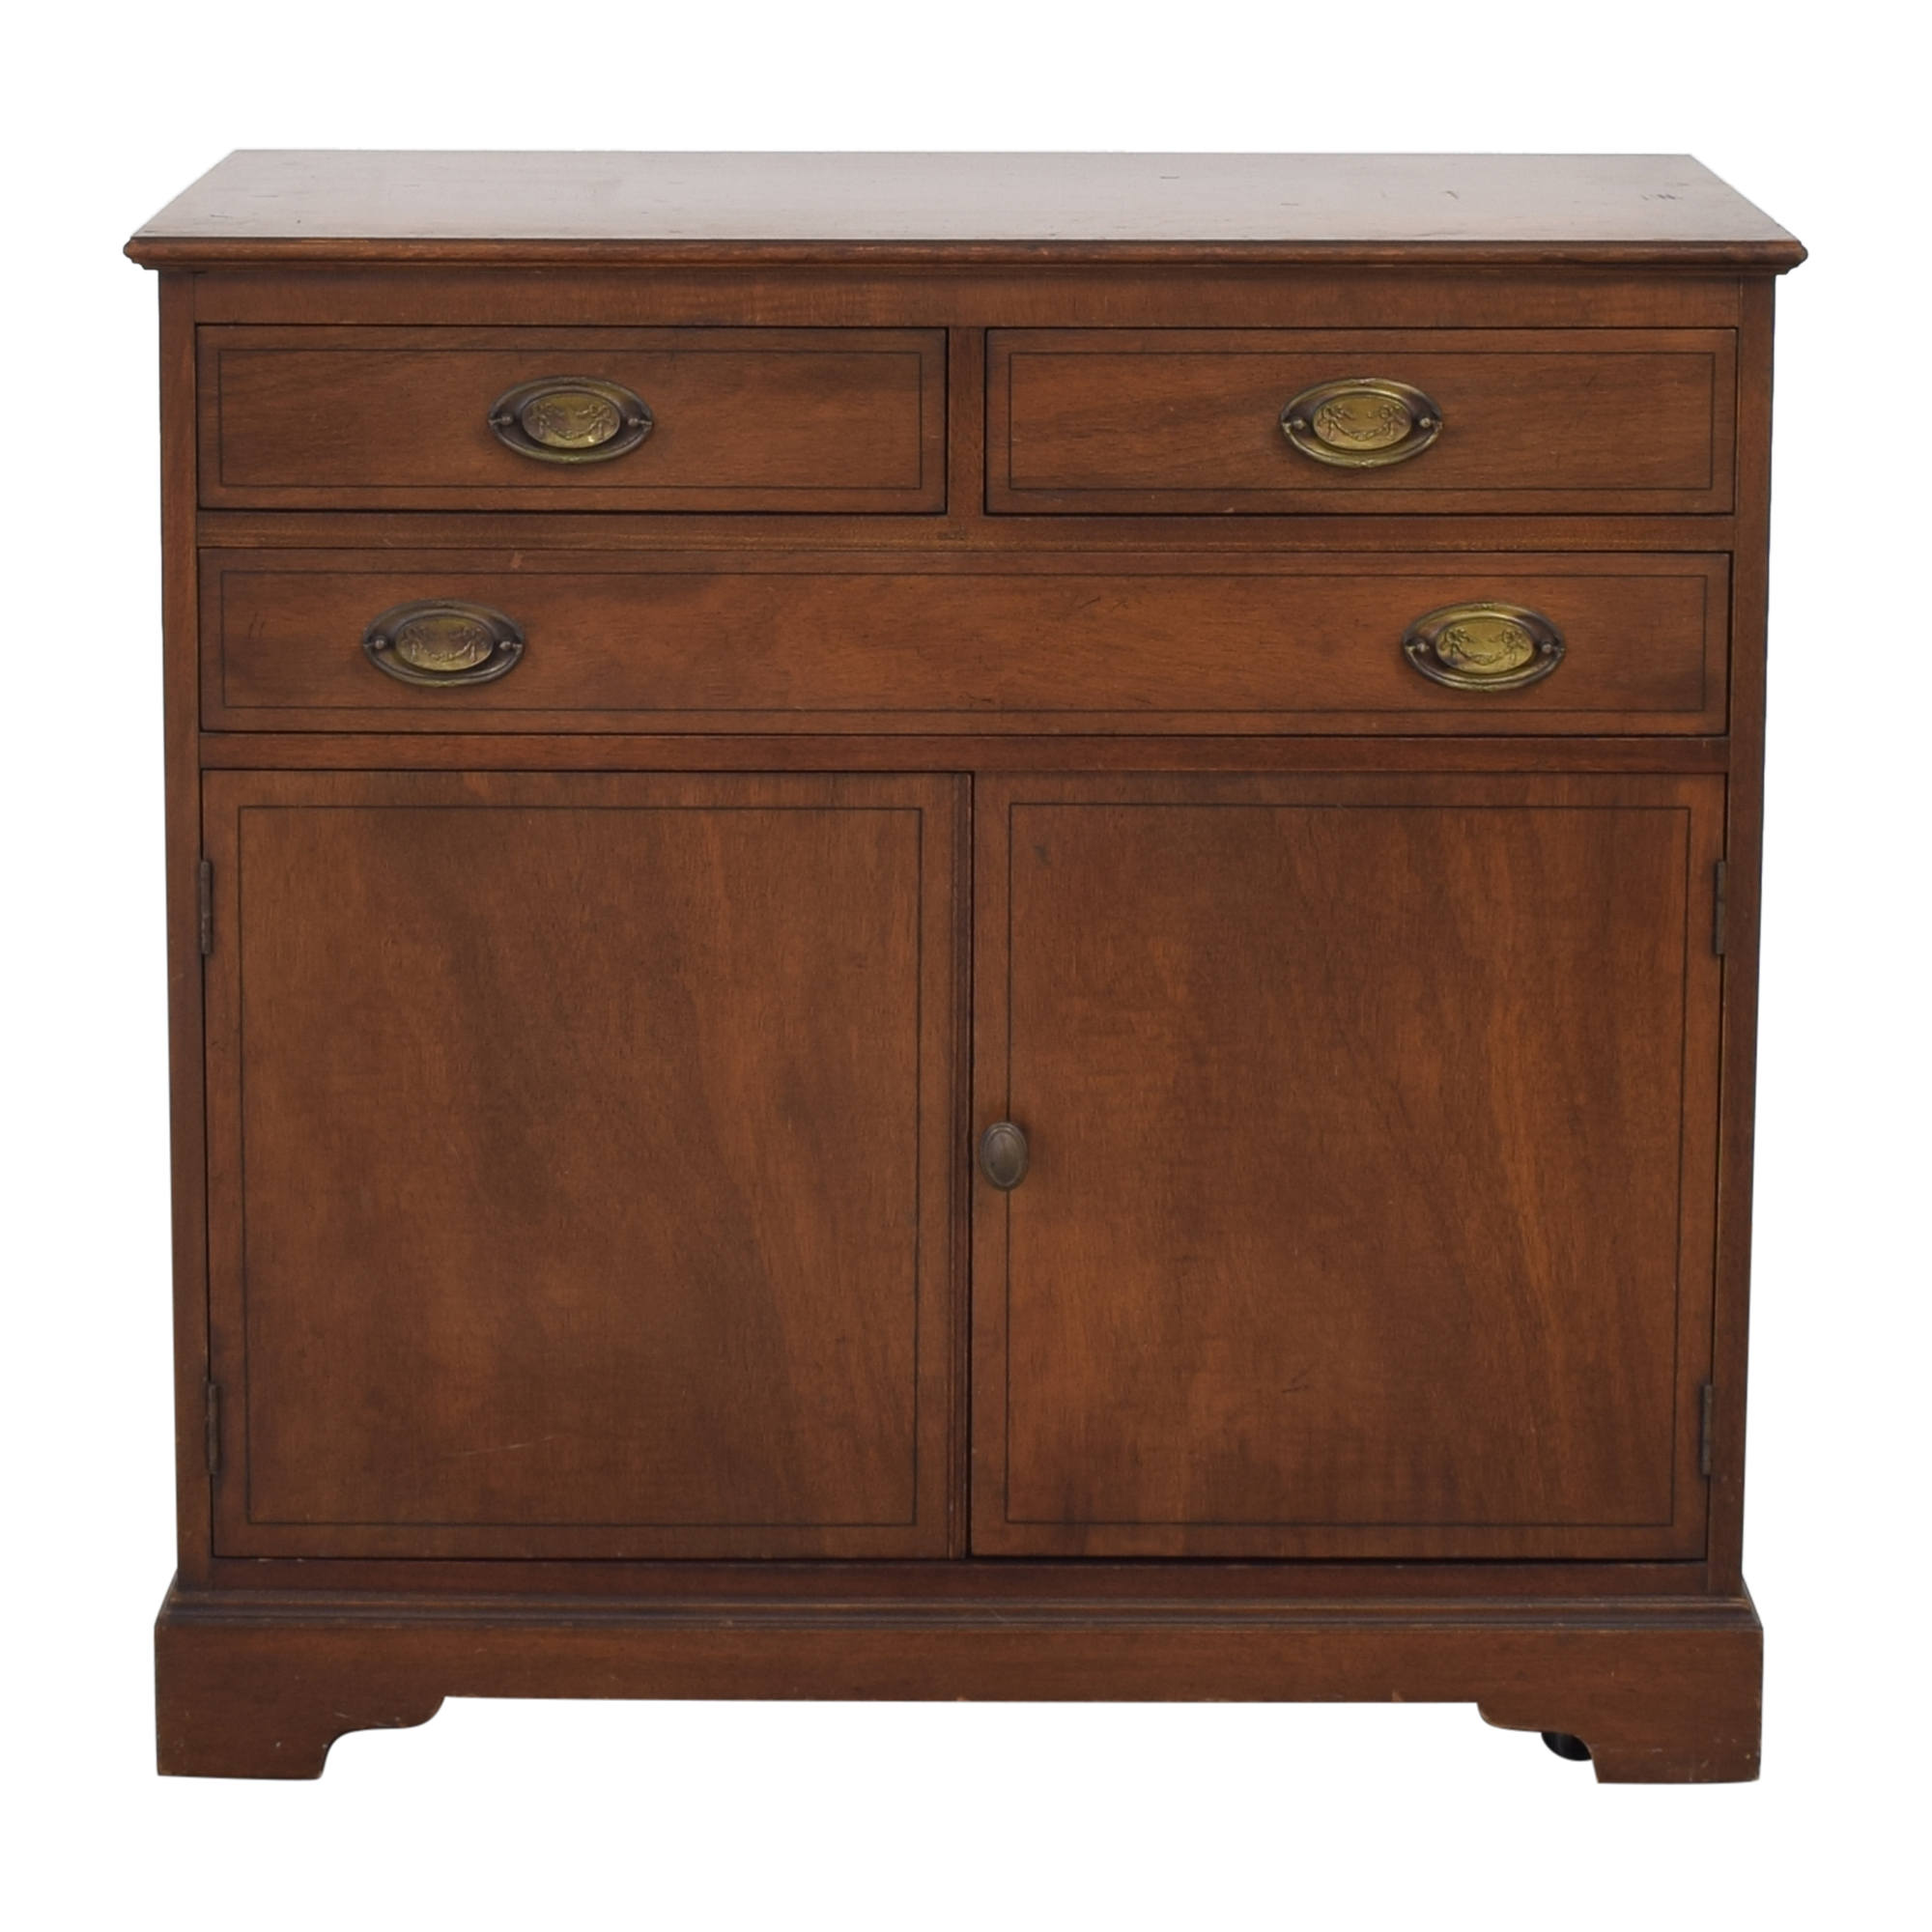 Henredon Furniture Henredon Furniture Cabinet coupon